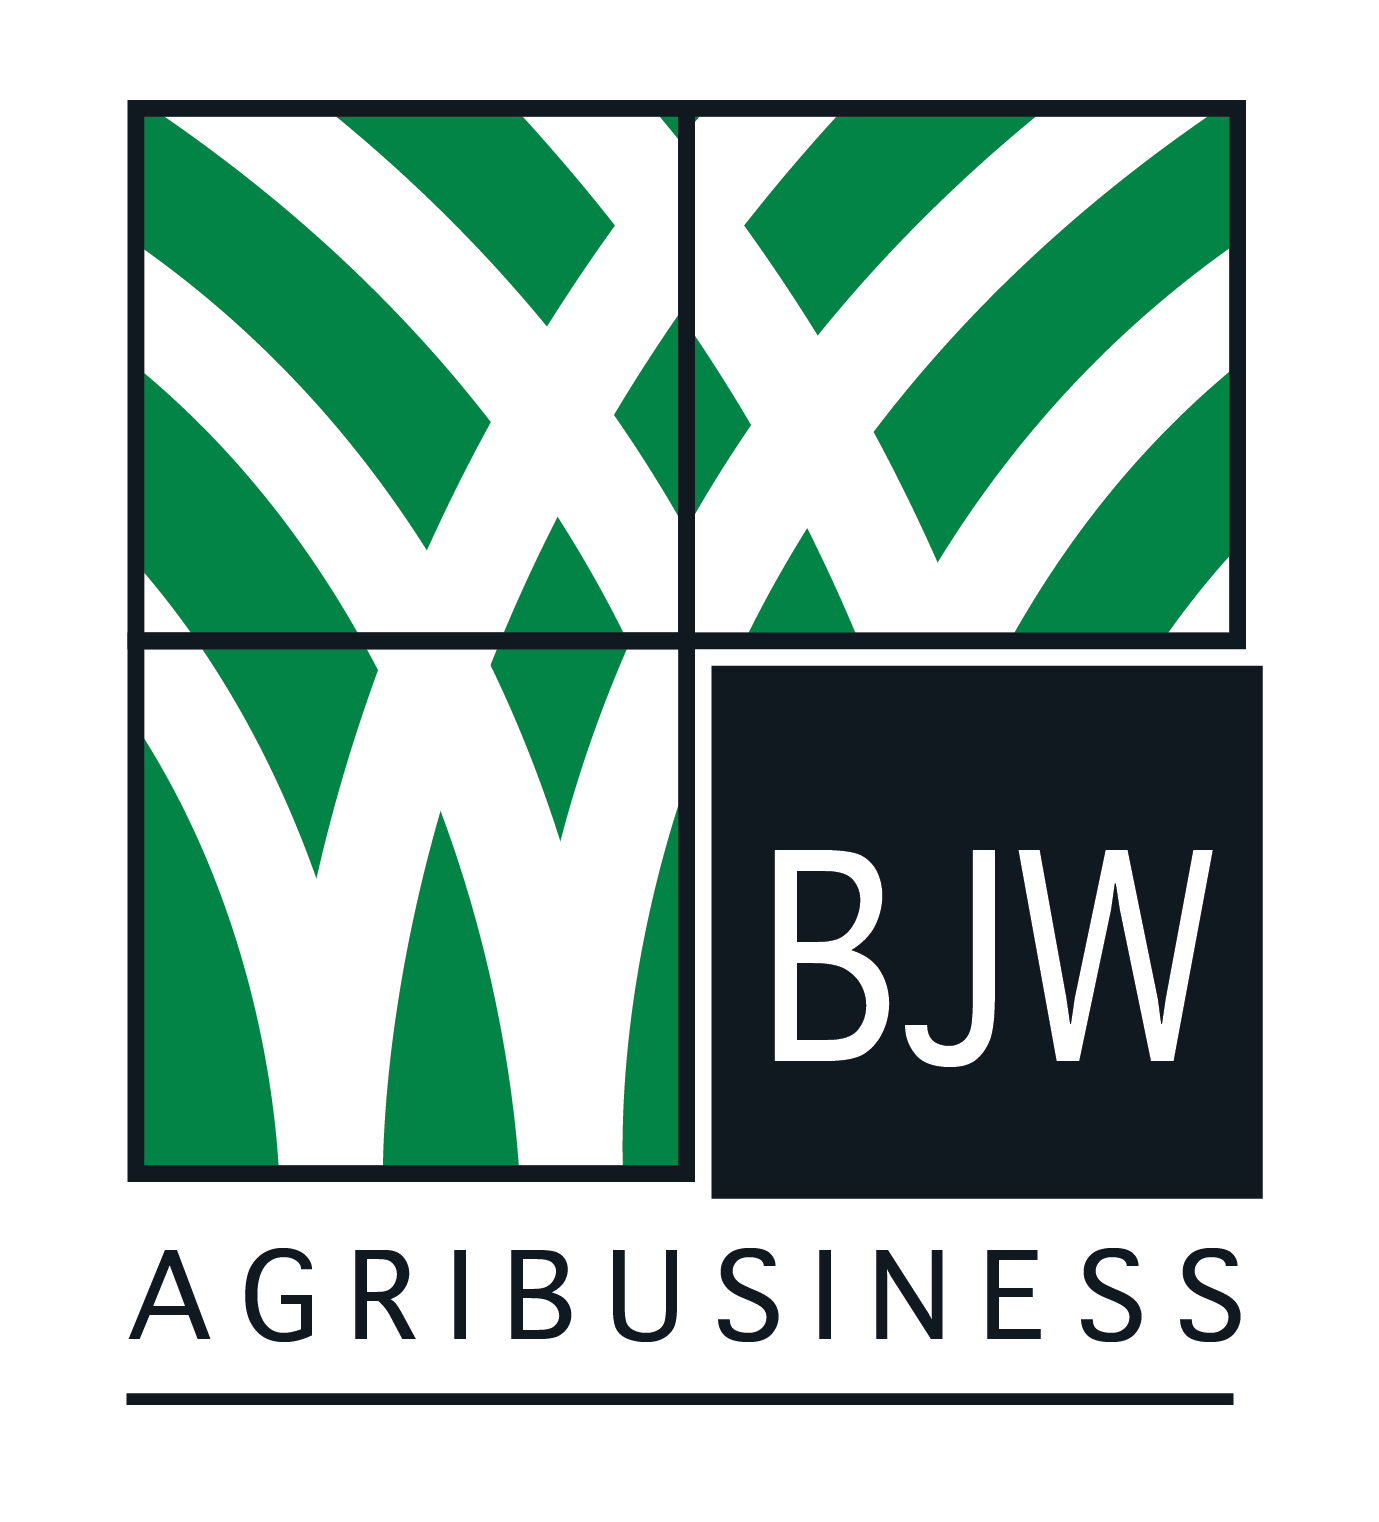 A management consulting firm specialising in agriculture